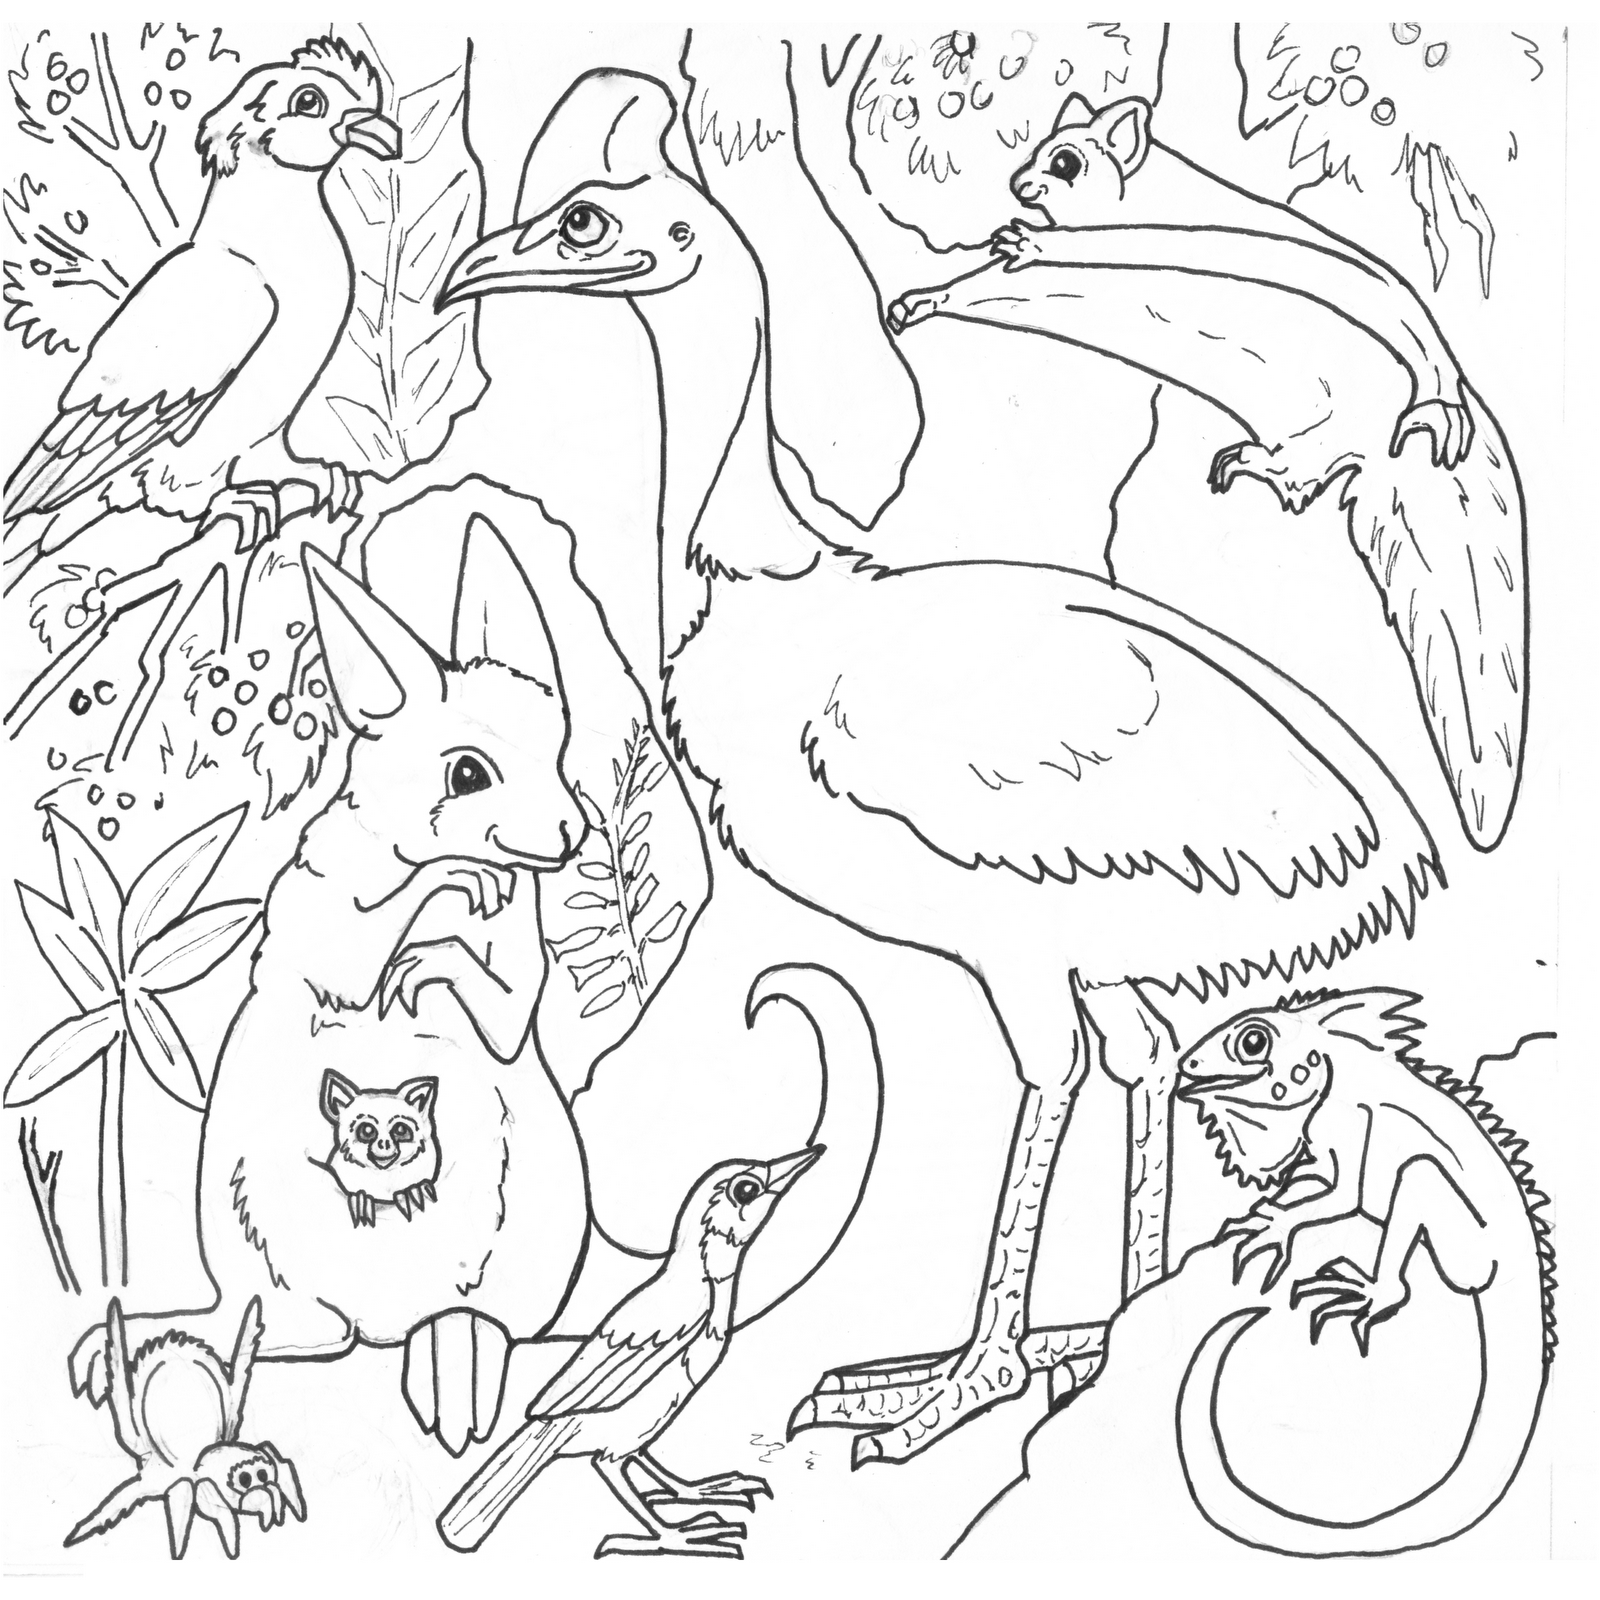 rainforest animal coloring pages savanna animals coloring pages at getdrawings free download animal rainforest pages coloring